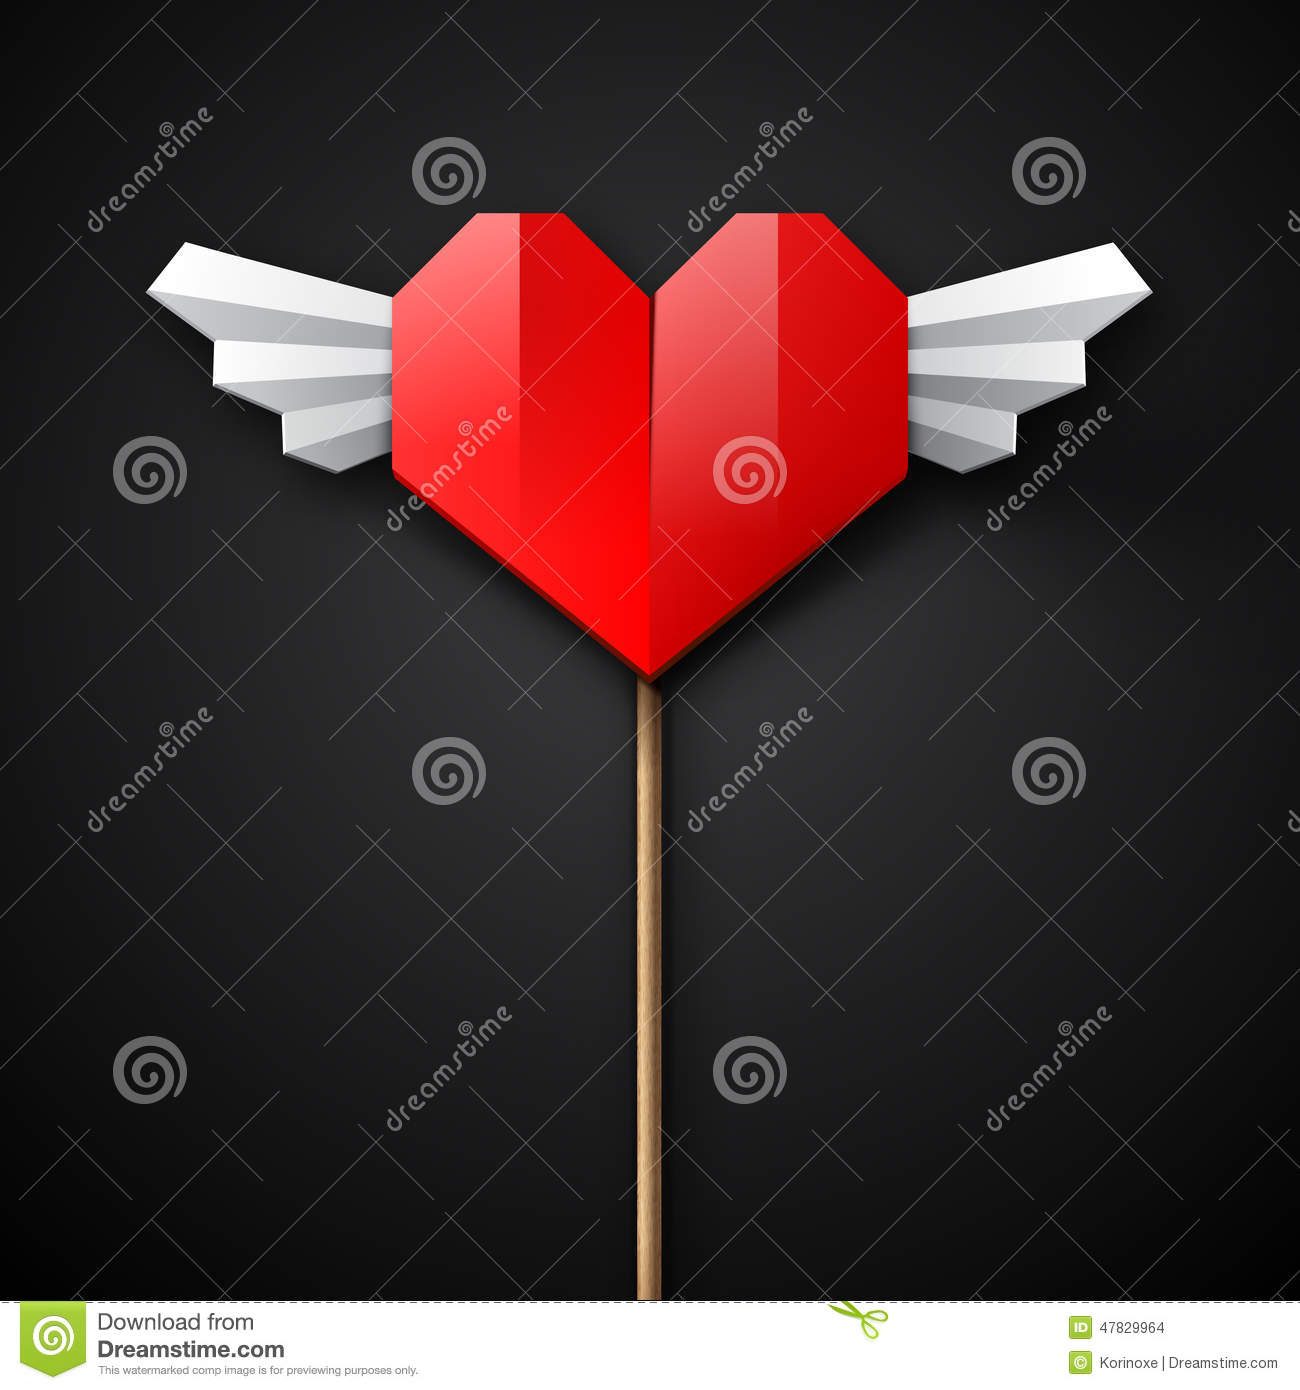 Red Origami Heart With Wings Stock Vector - Image: 47829964 - photo#40